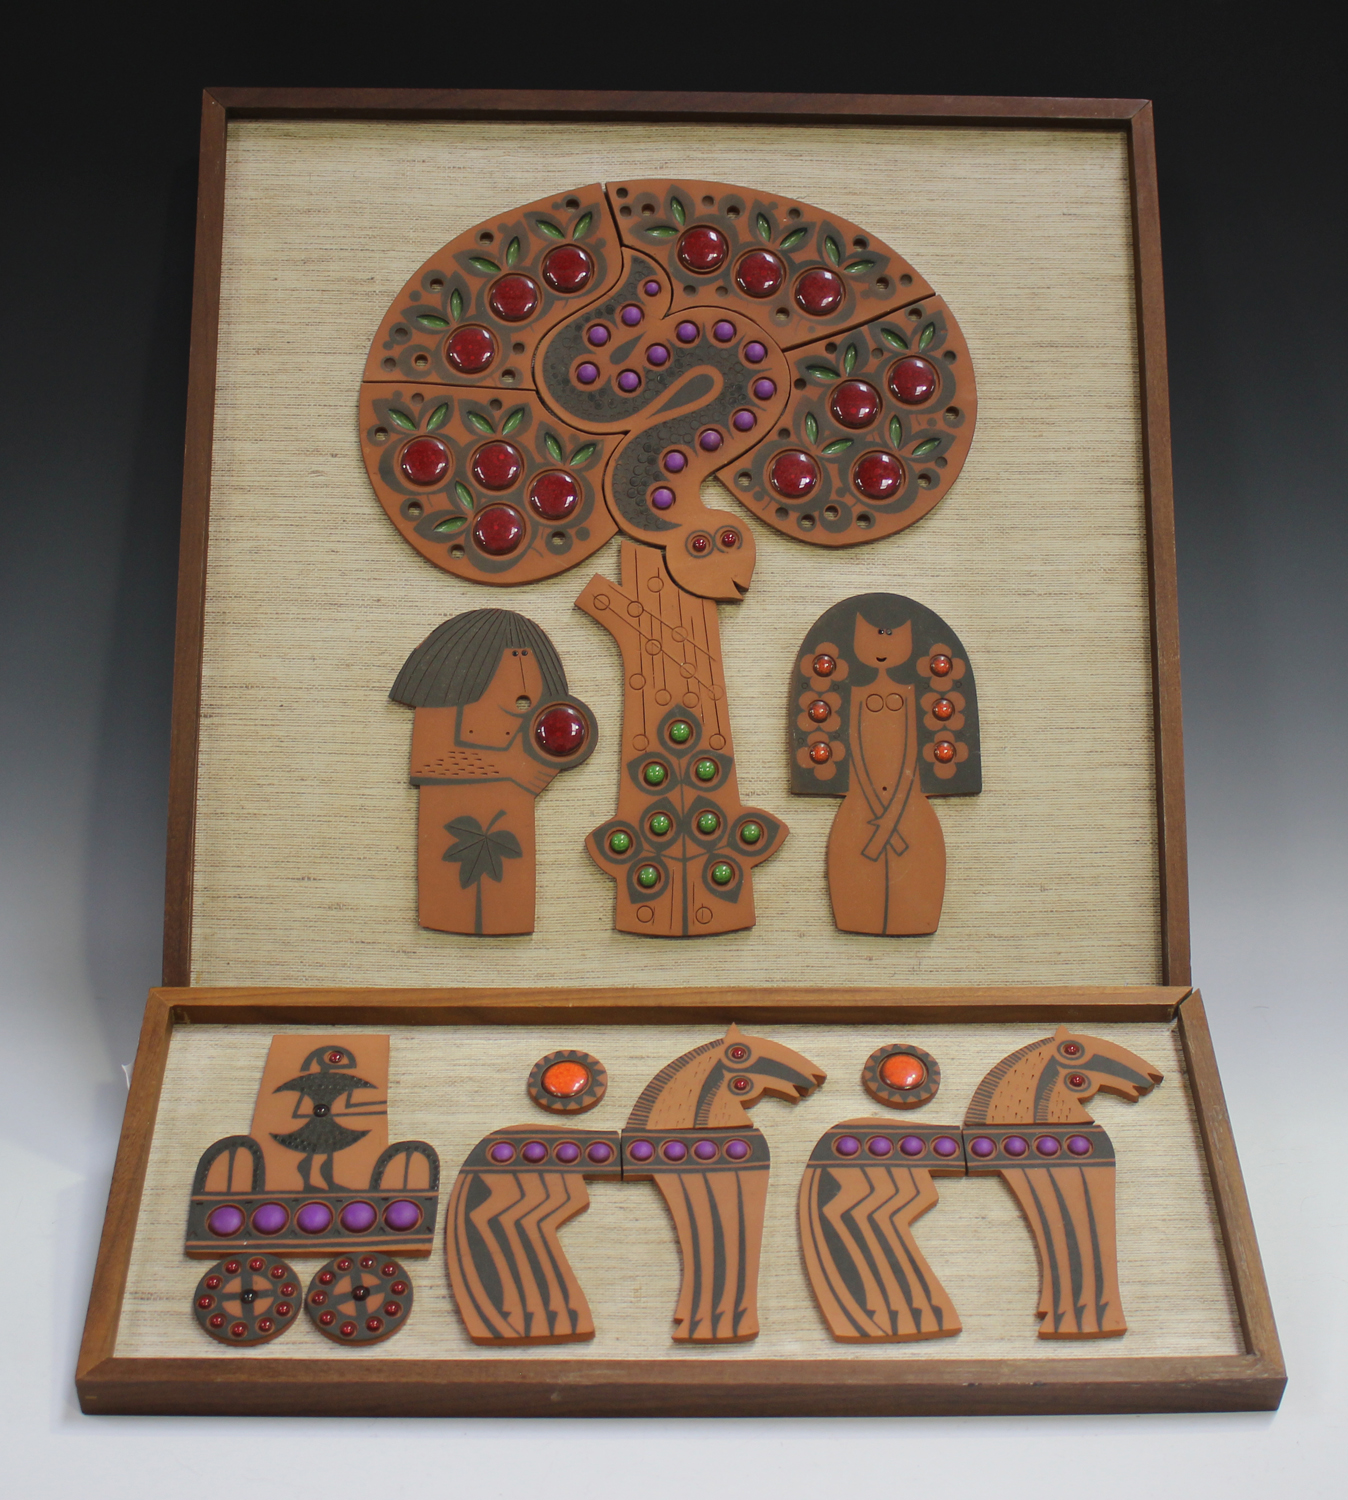 Two Hornsea Muramic wall plaques, circa 1960/70s, designed by John Clappison, depicting Adam and Eve